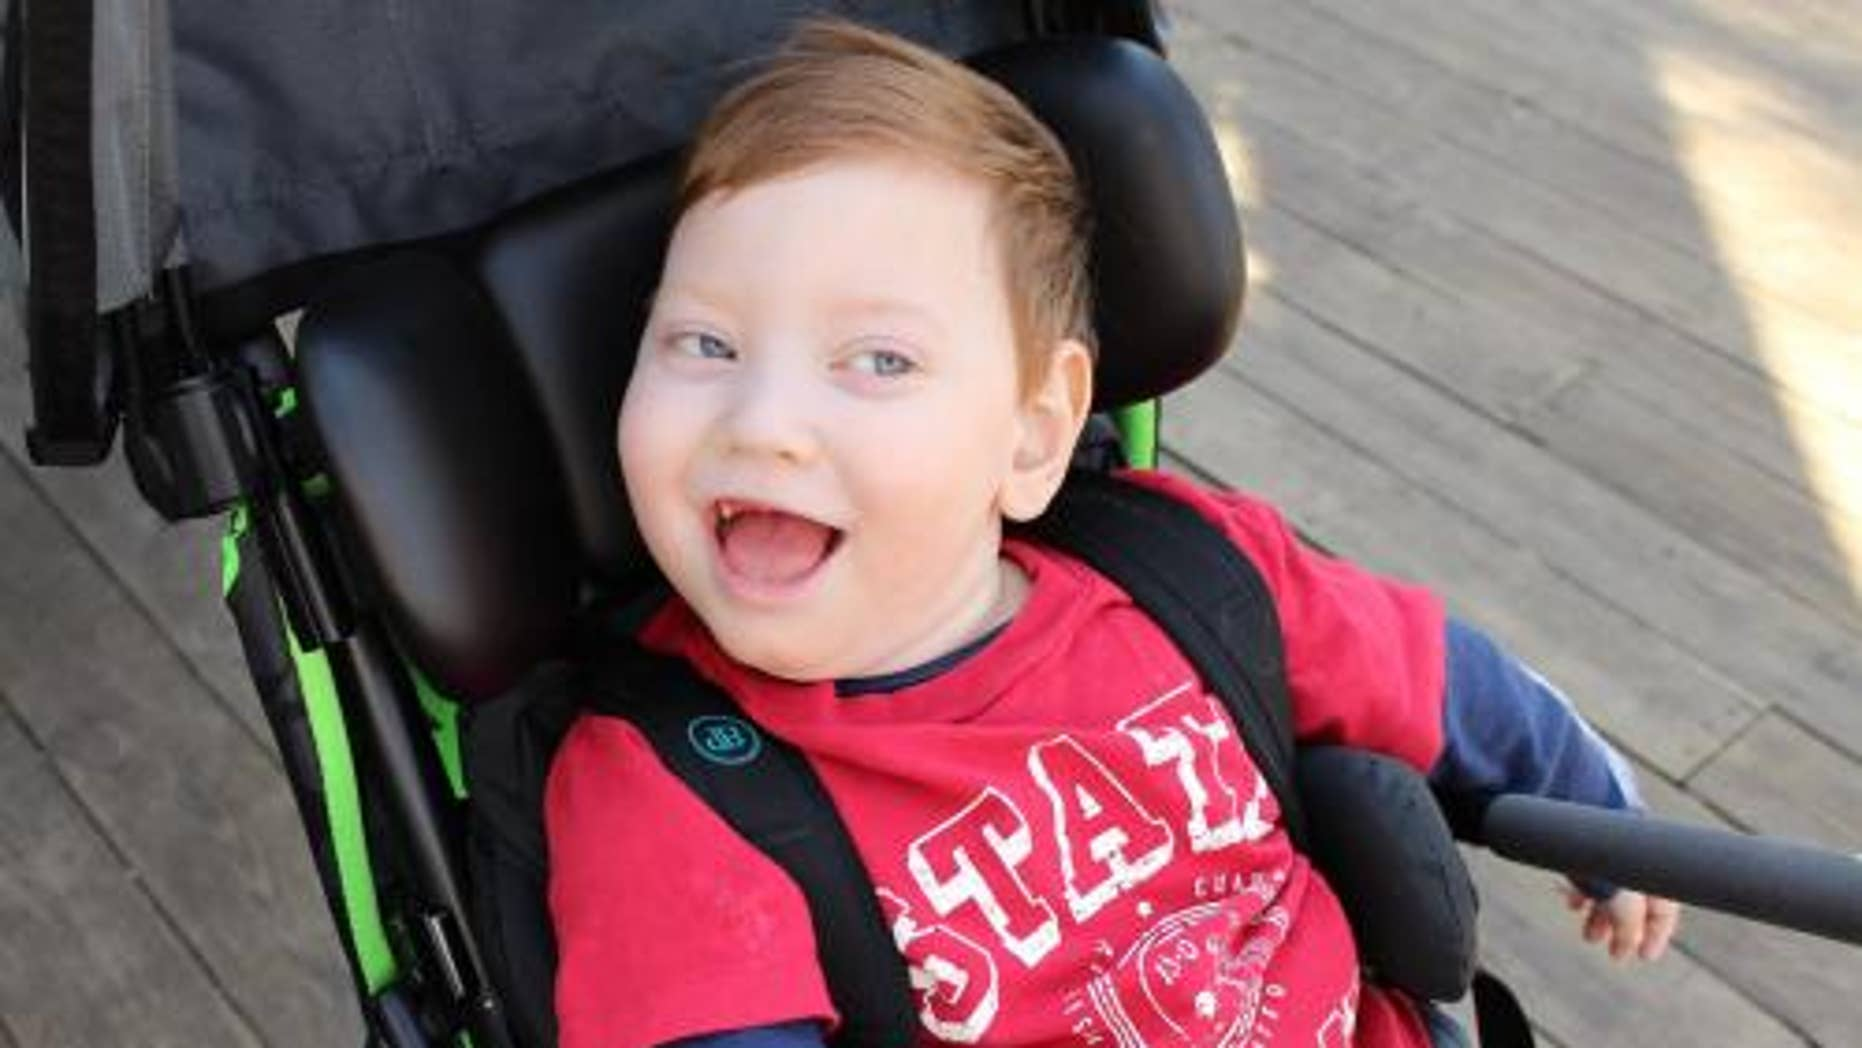 Malachi was born weighing just over 1 pound at 24 weeks gestation.